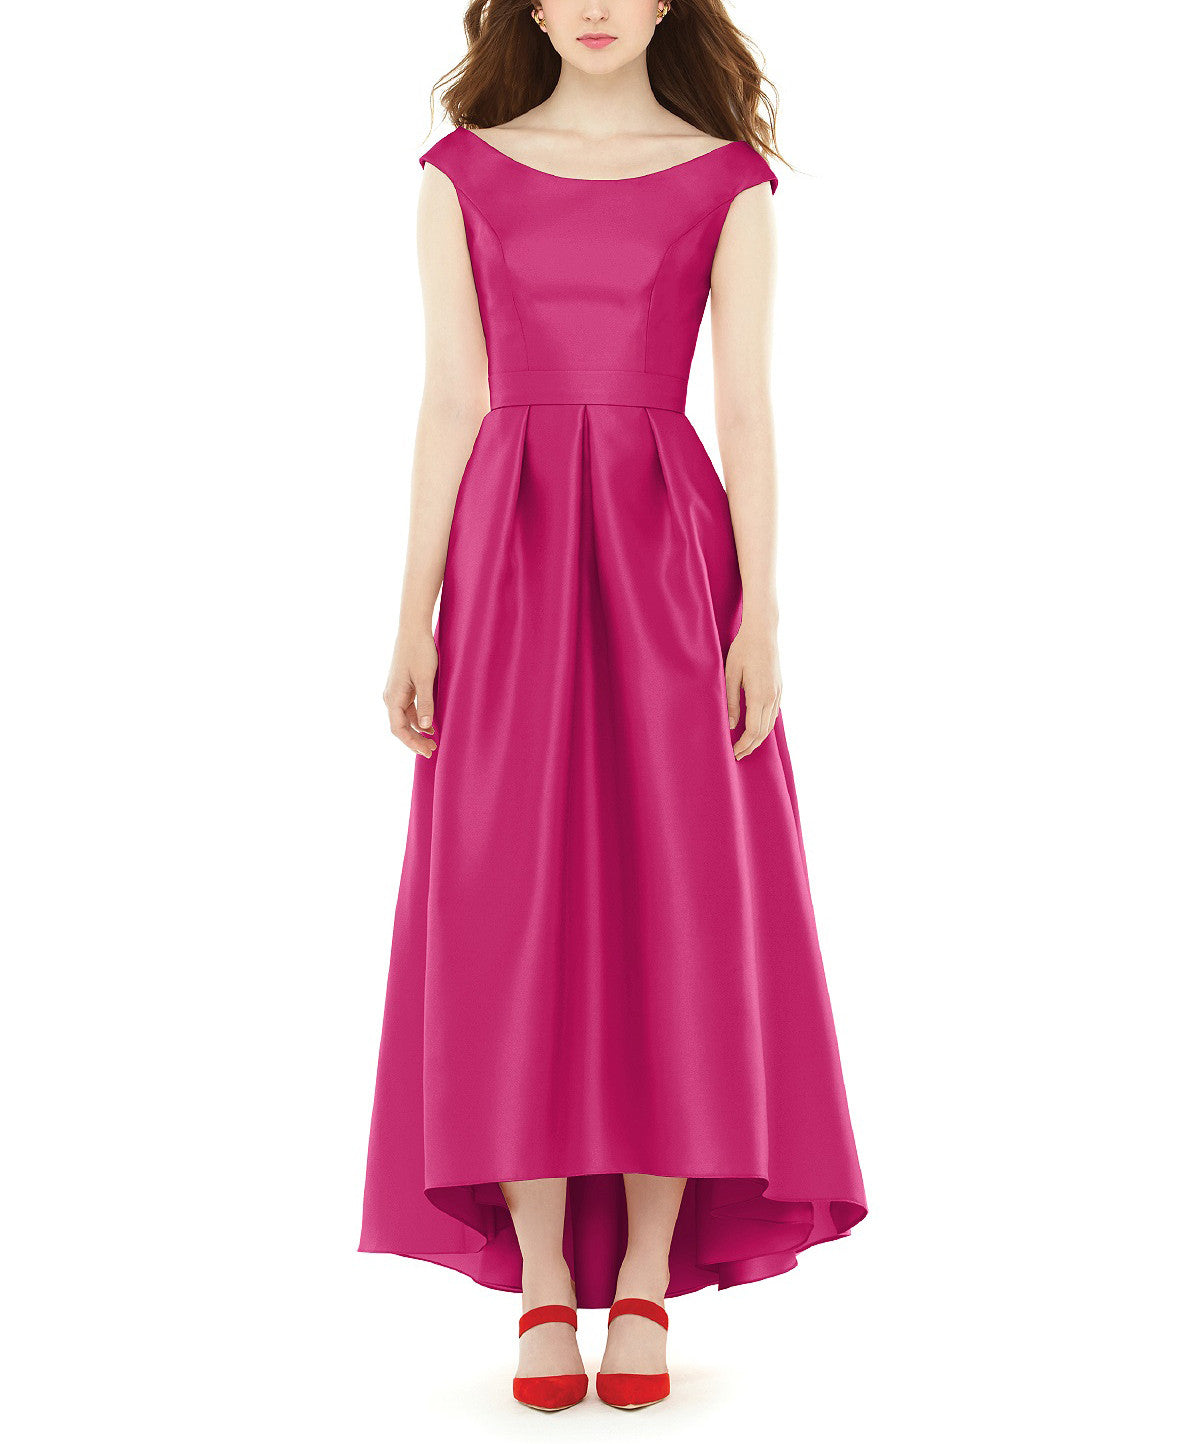 Alfred sung style d722 bridesmaid dress brideside alfred sung style d722 ombrellifo Choice Image